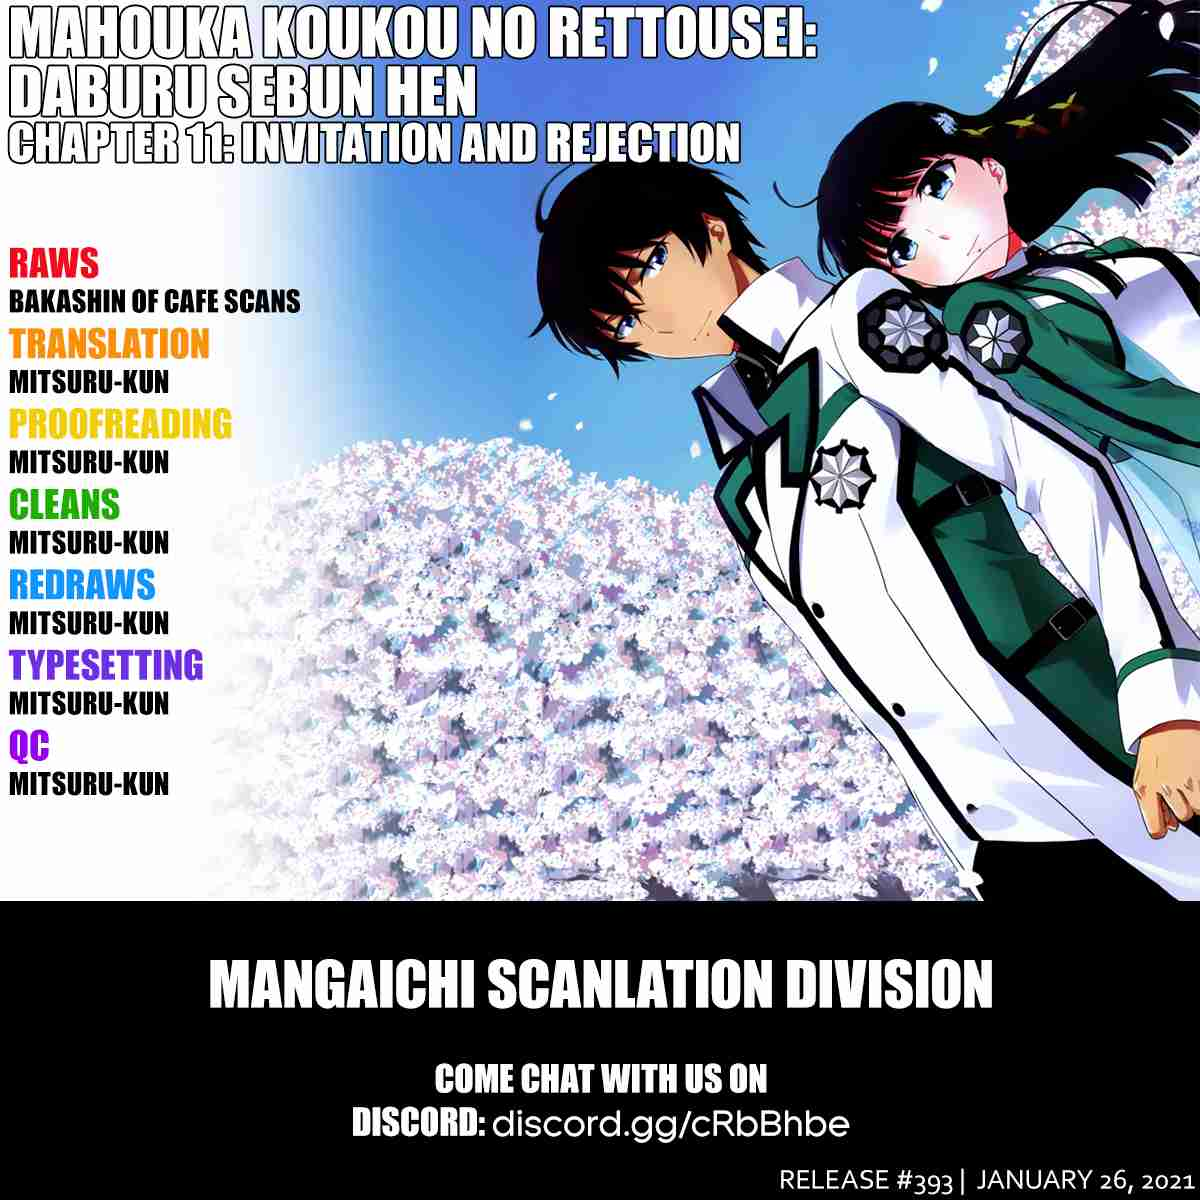 Mahouka Koukou no Rettousei Double Seven hen Vol. 2 Ch. 11 Invitation and Rejection